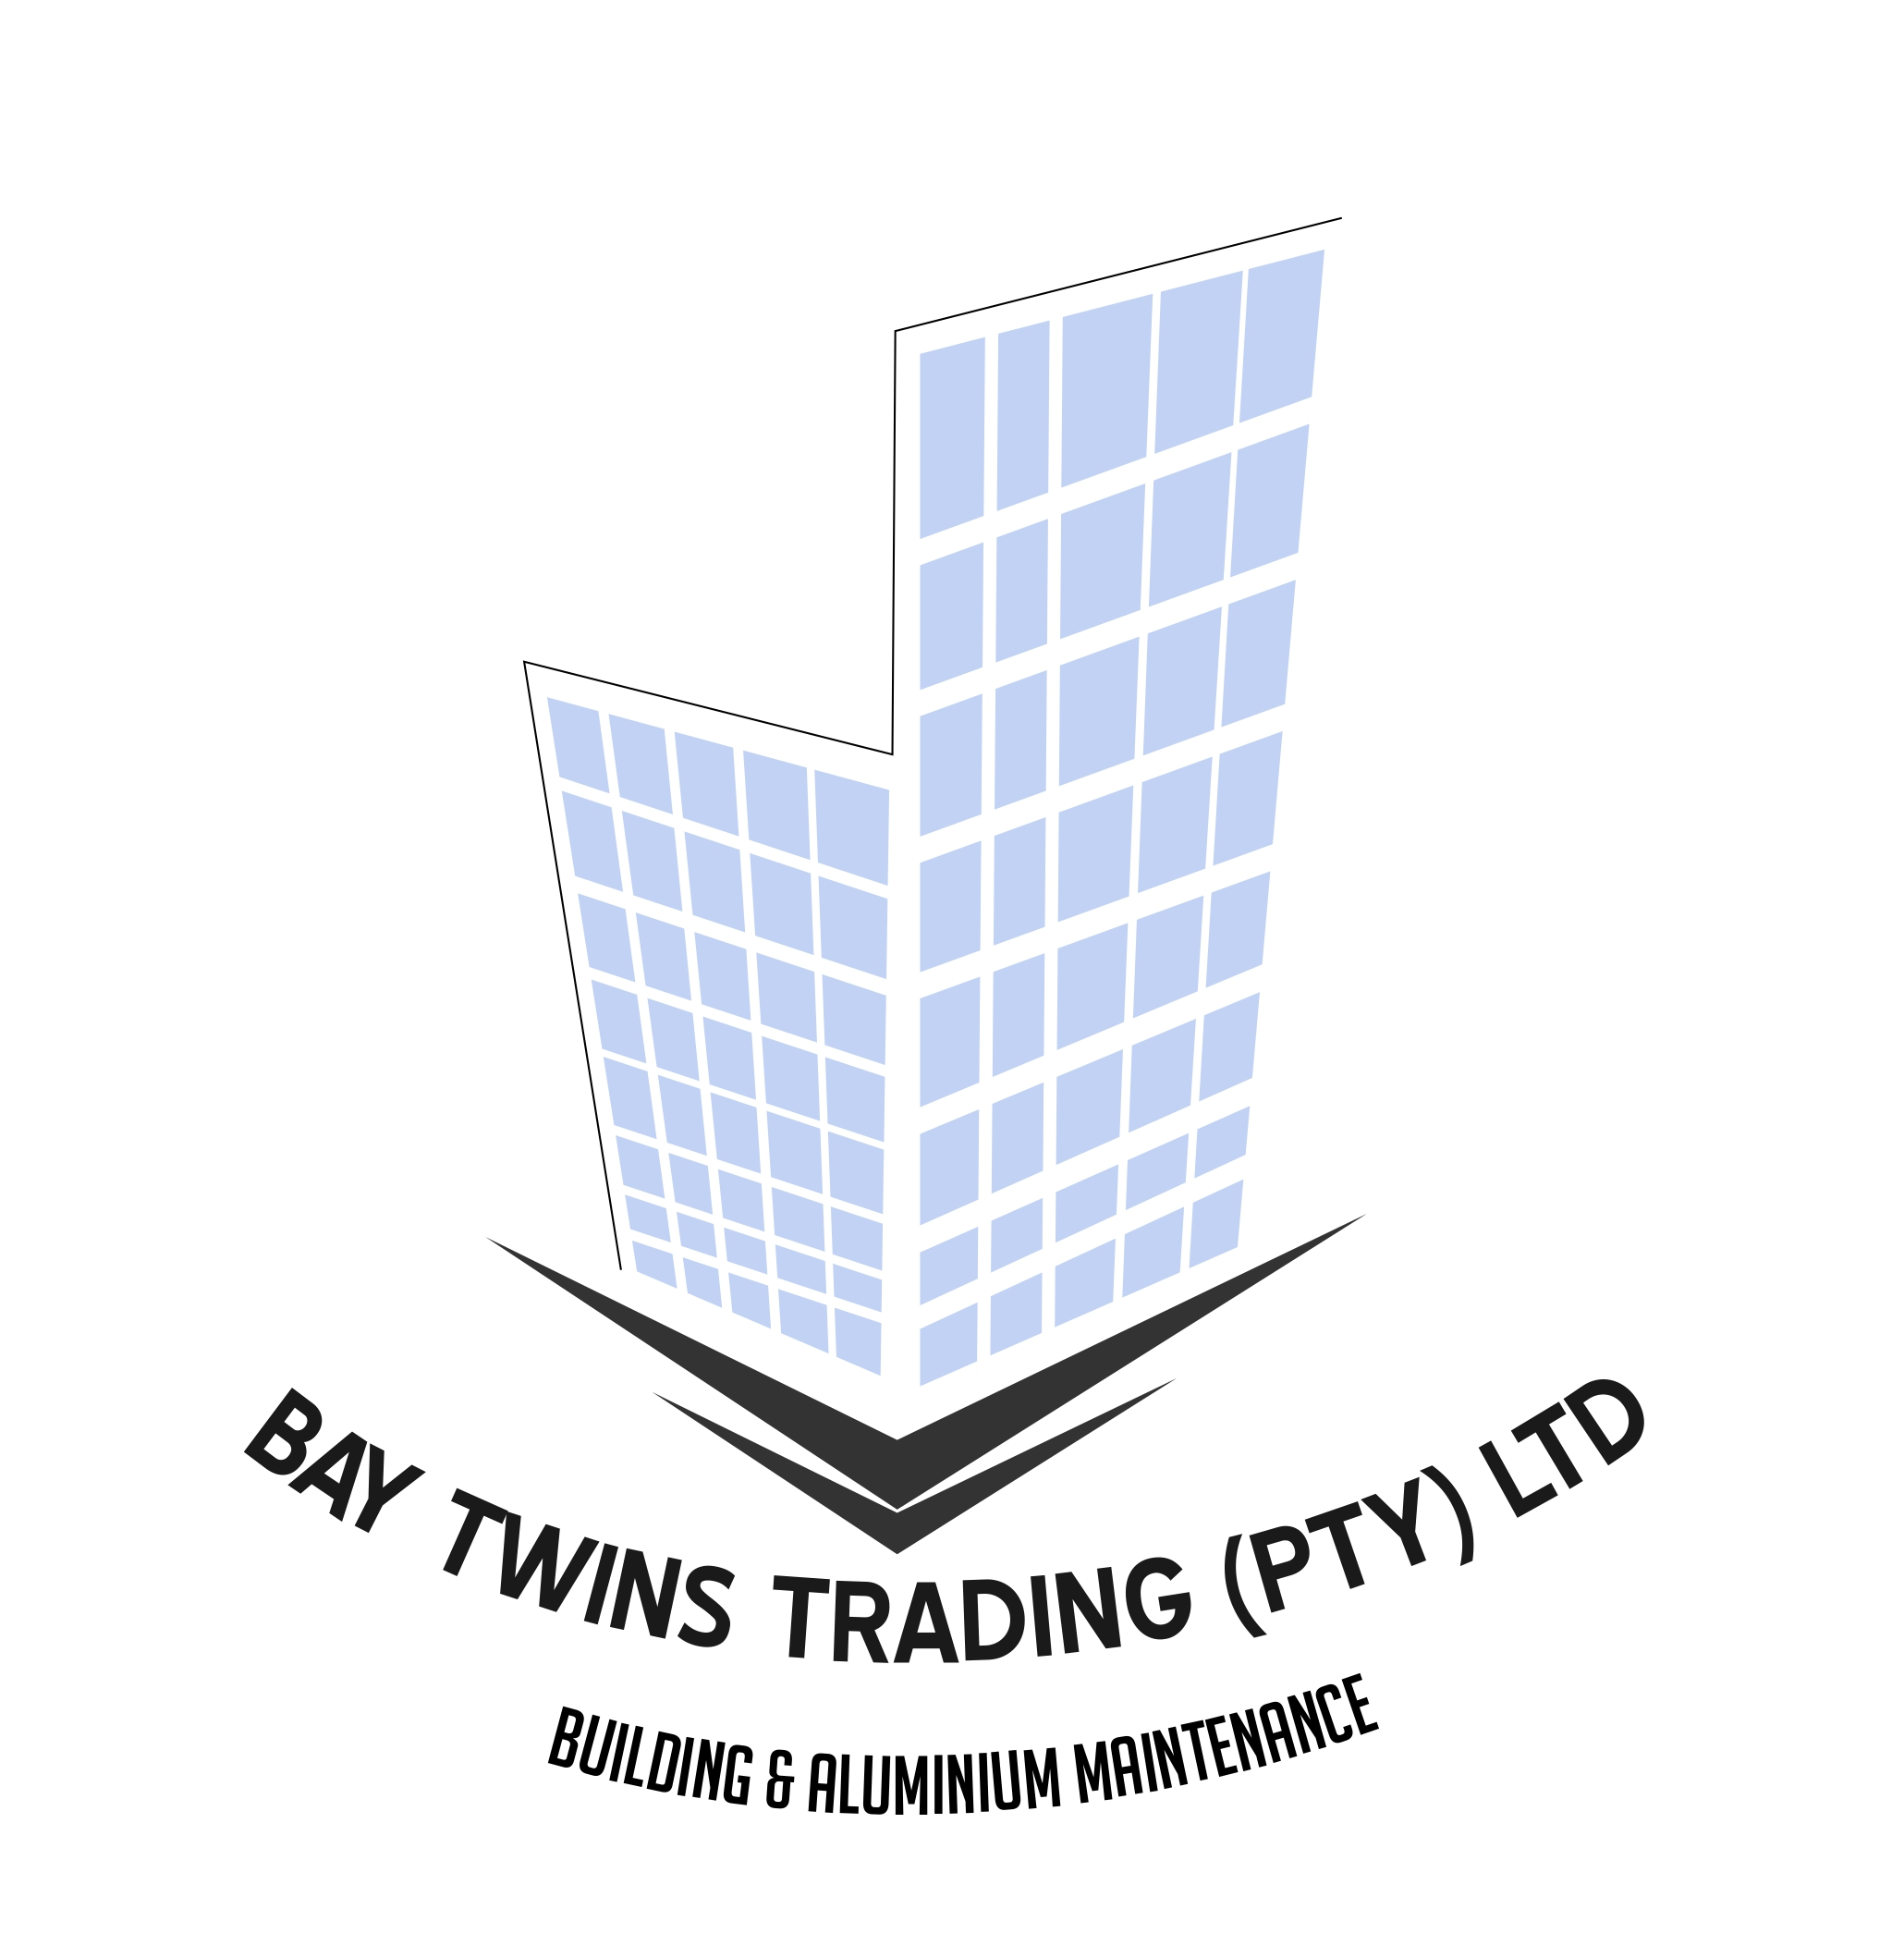 Bay Twins Trading (Pty) Ltd